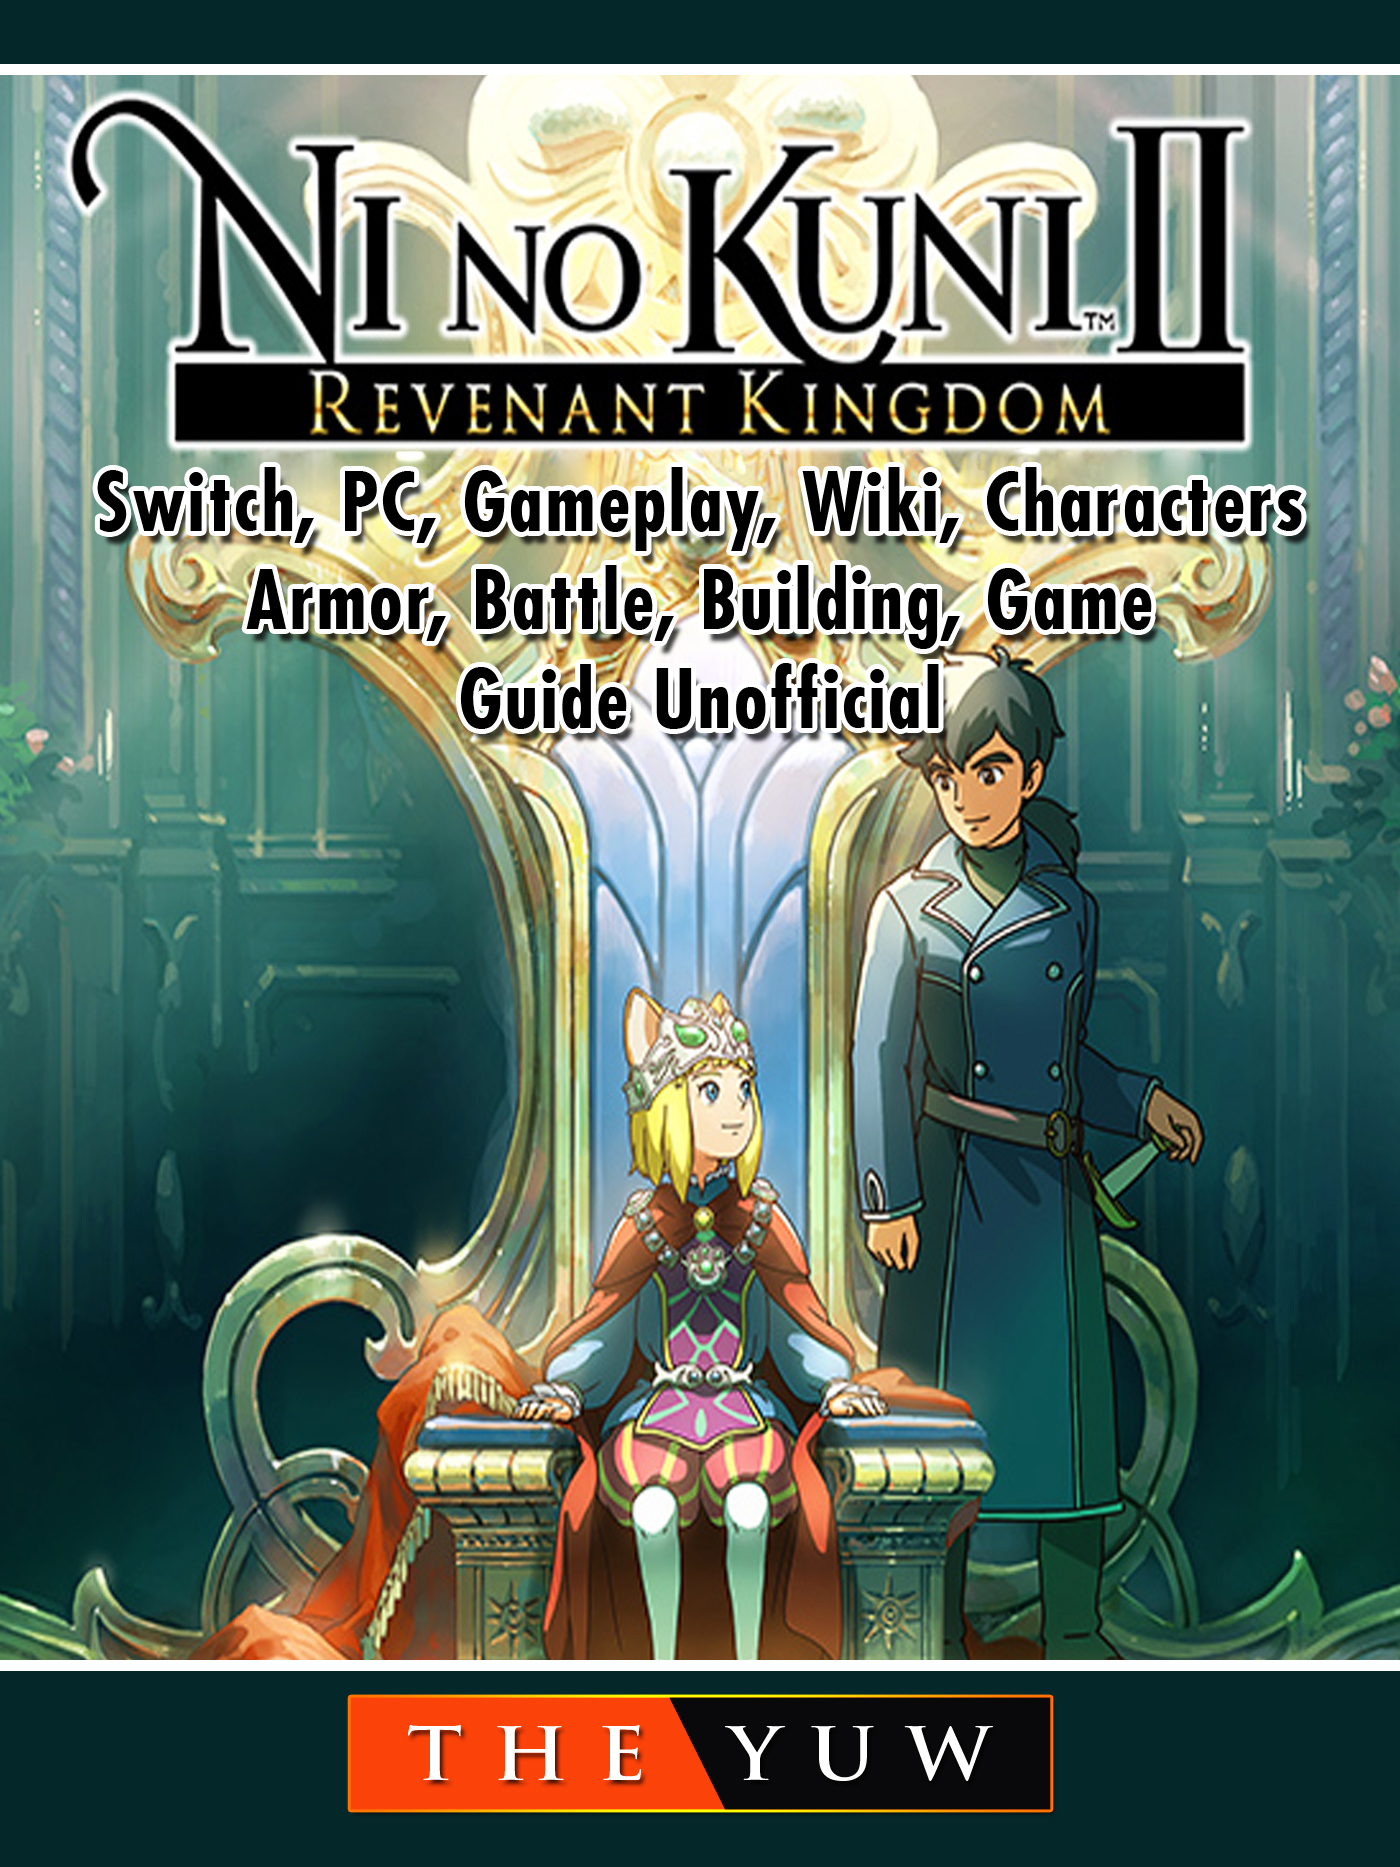 Ni No Kuni II Revenant Kingdom, Switch, PC, Gameplay, Wiki, Characters, Armor, Battle, Building, Game Guide Unofficial